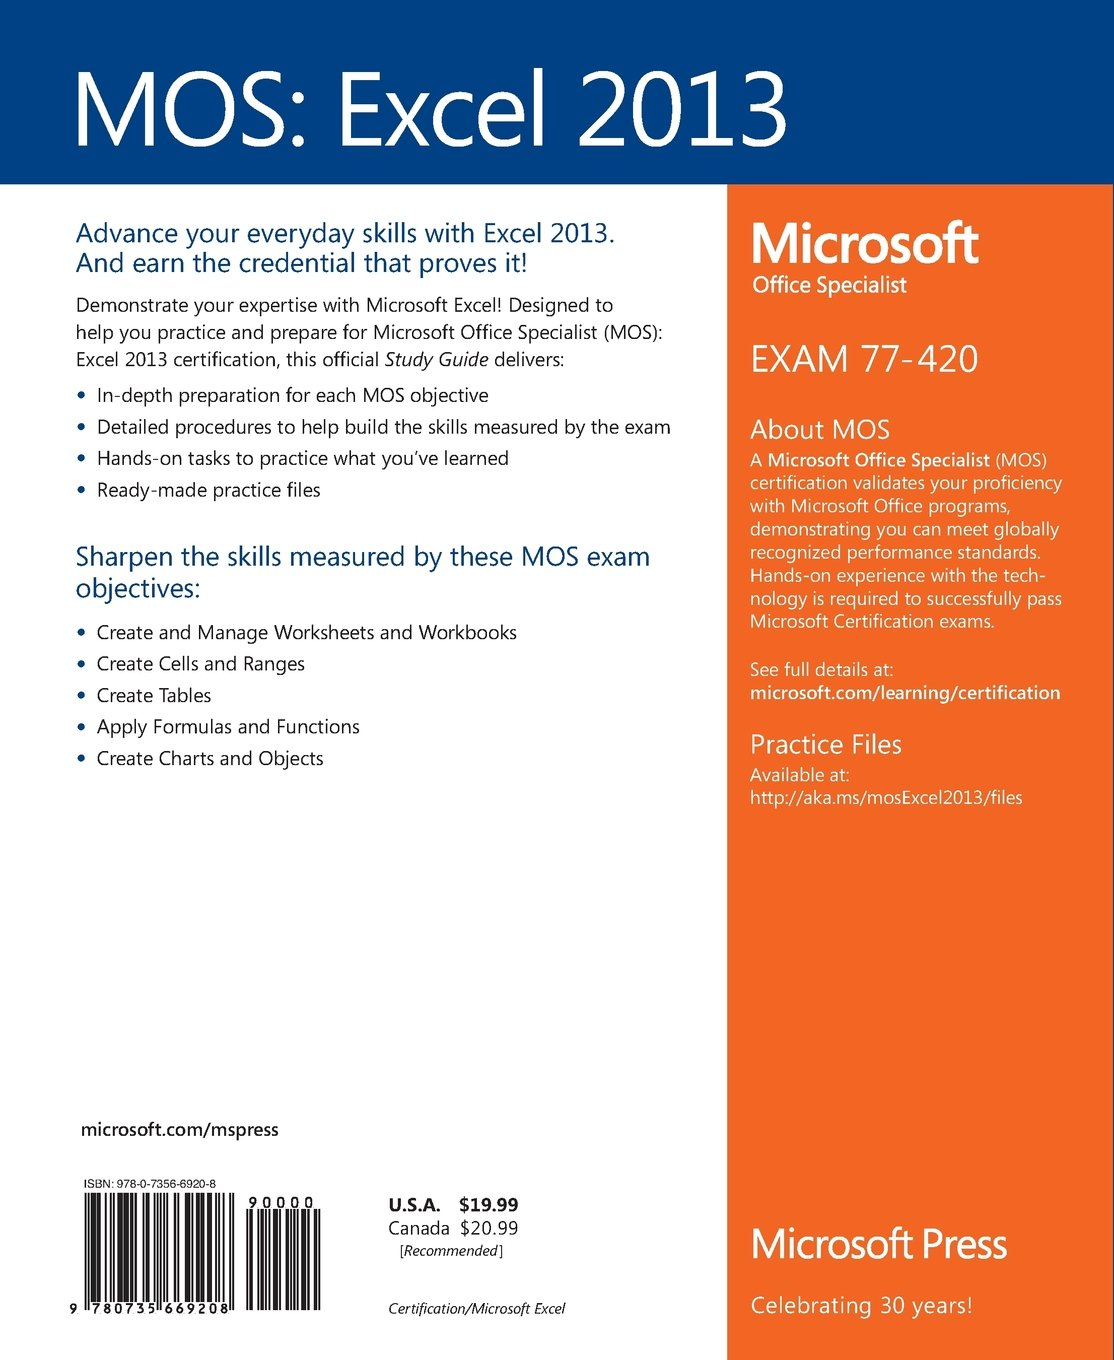 Mos 2013 study guide for microsoft excel amazon joan mos 2013 study guide for microsoft excel amazon joan lambert 9780735669208 books xflitez Image collections